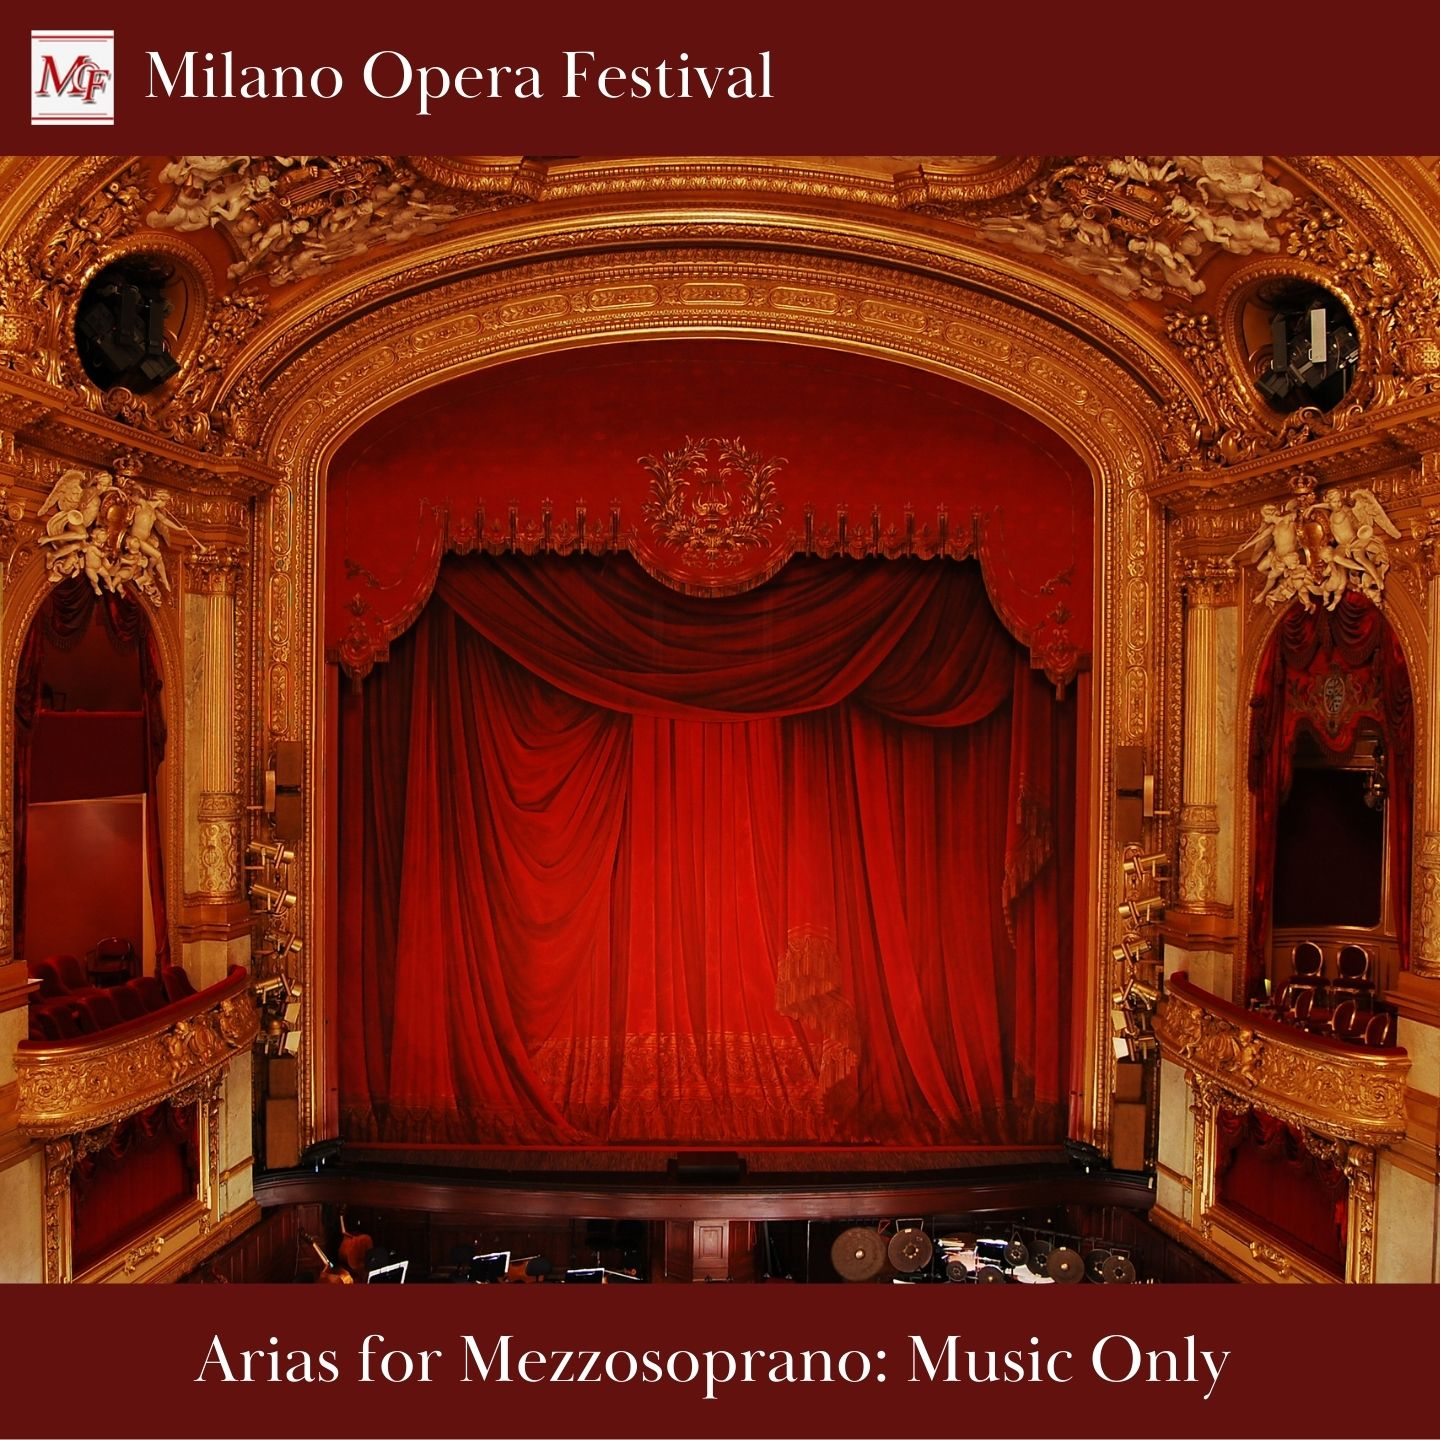 Arias for Mezzosoprano - Only Music